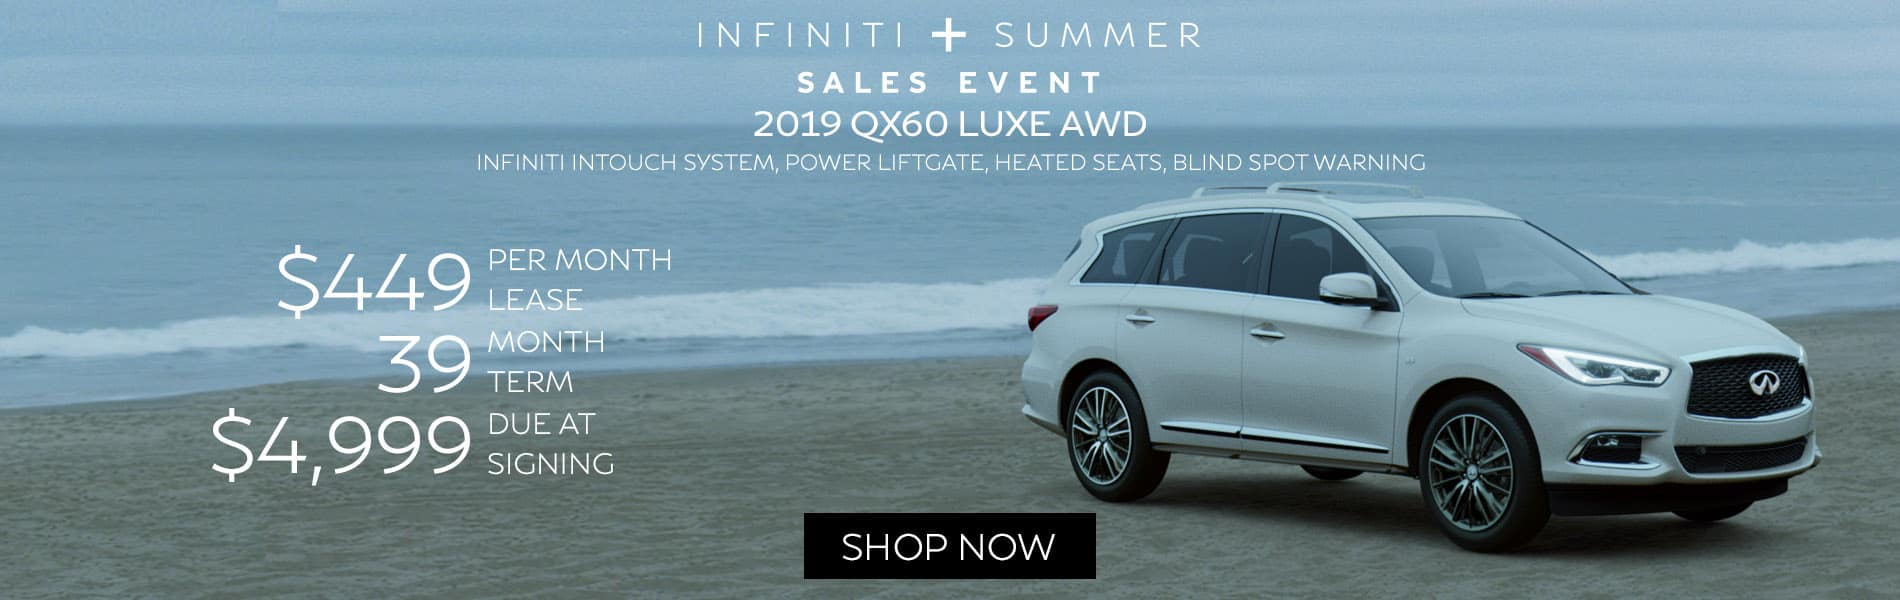 Lease a 2019 QX60 LUXE AWD for $449 per month with $4,999 due at signing